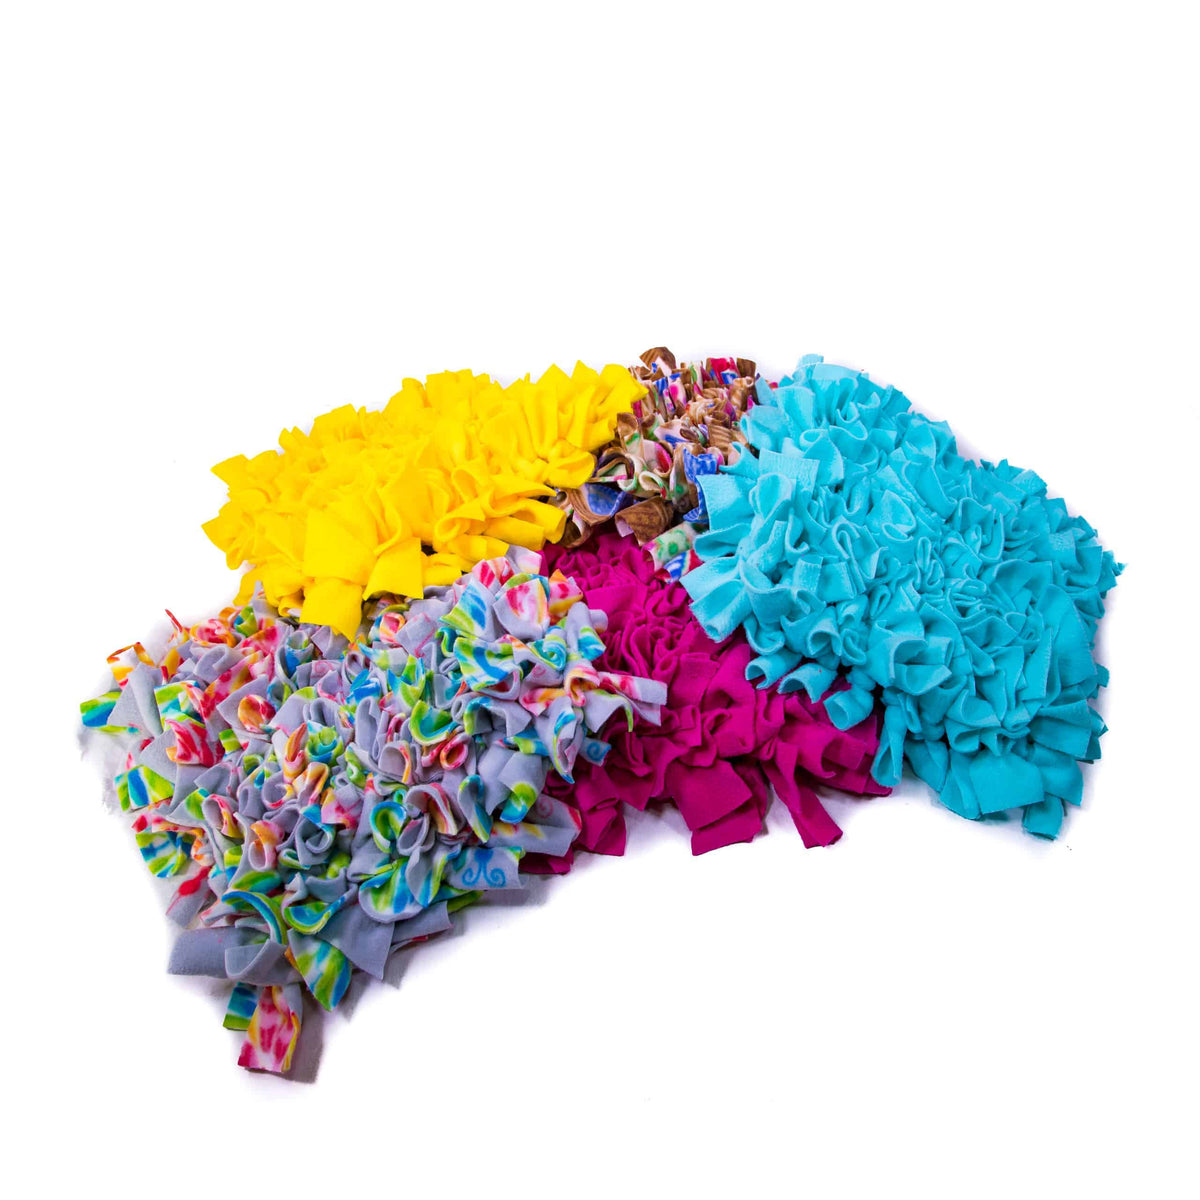 Plush Rooting/Snuffle Mats (choose boy or girl)